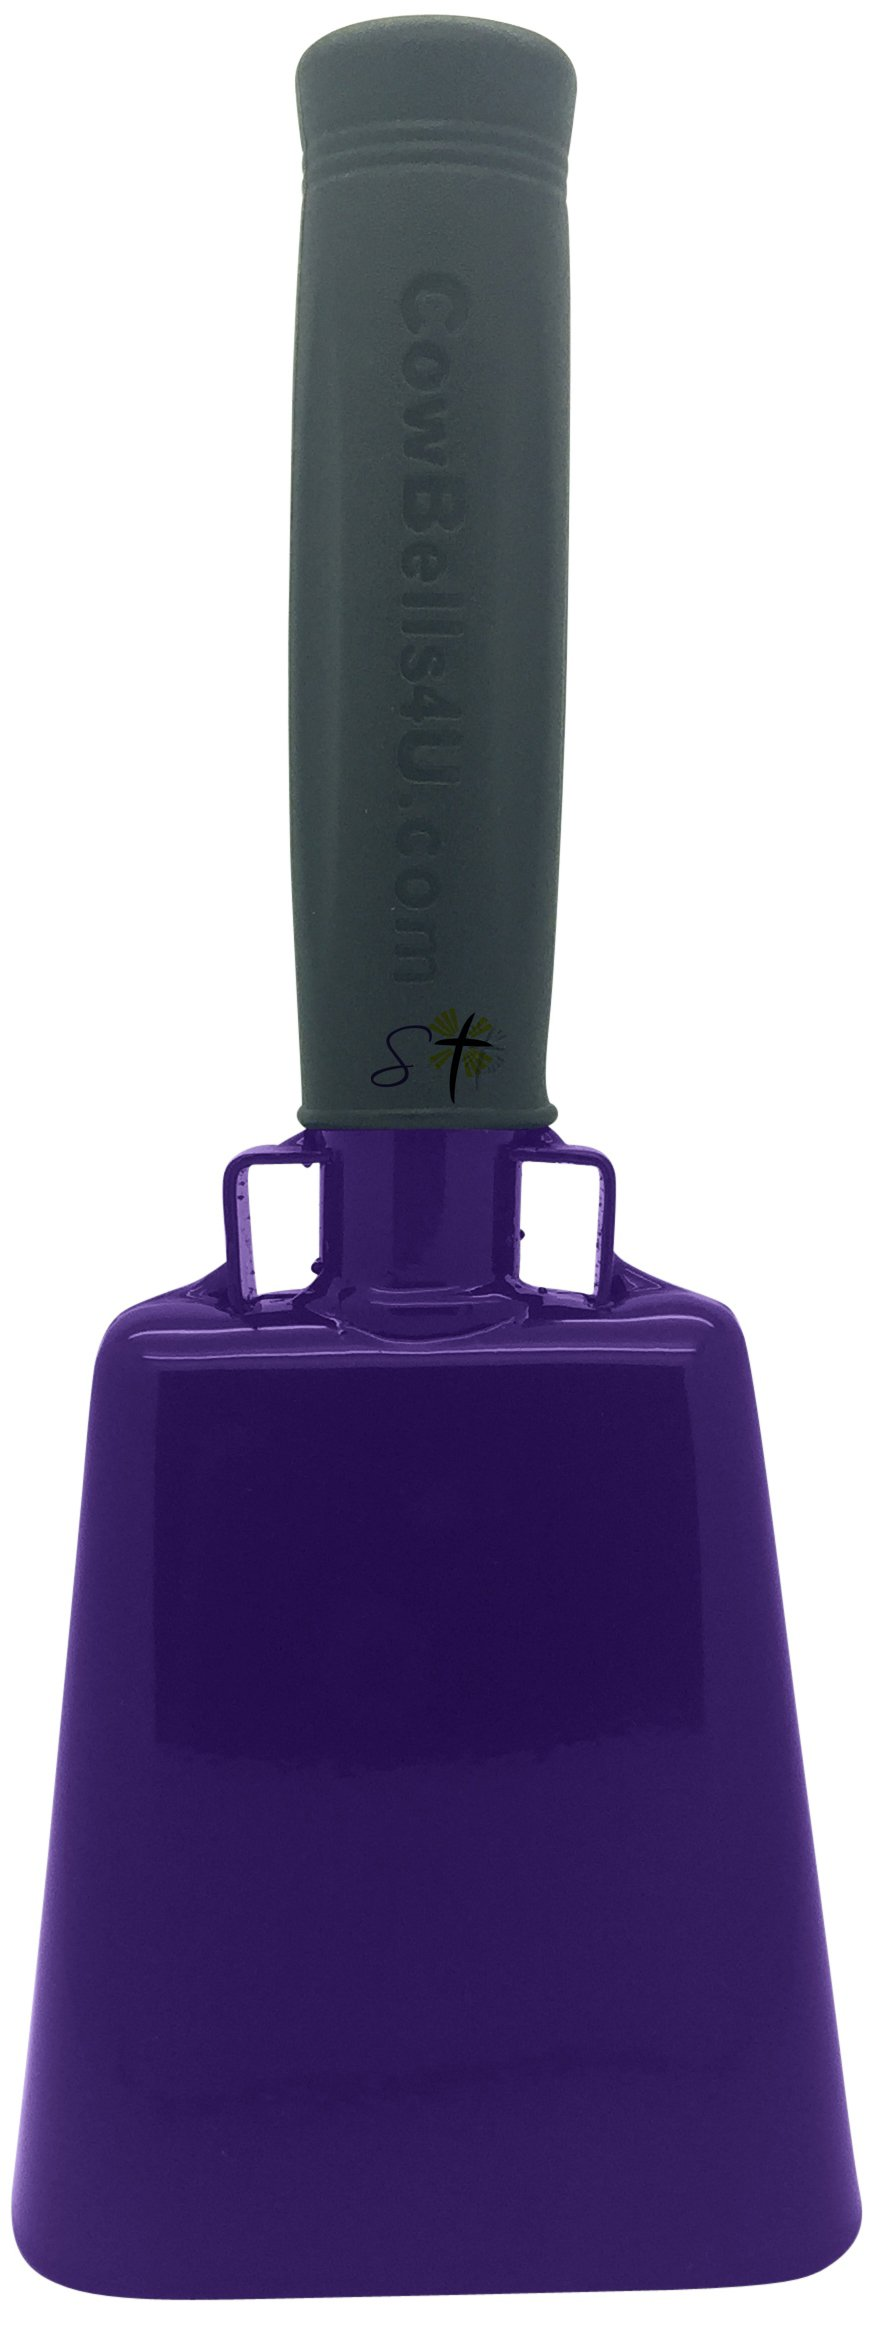 8.6 inch Purple Bell Black Handle Cowbell with Stick Grip Handle Used for Cheering at Sporting Events - Cow Bell by Stewart Trading™